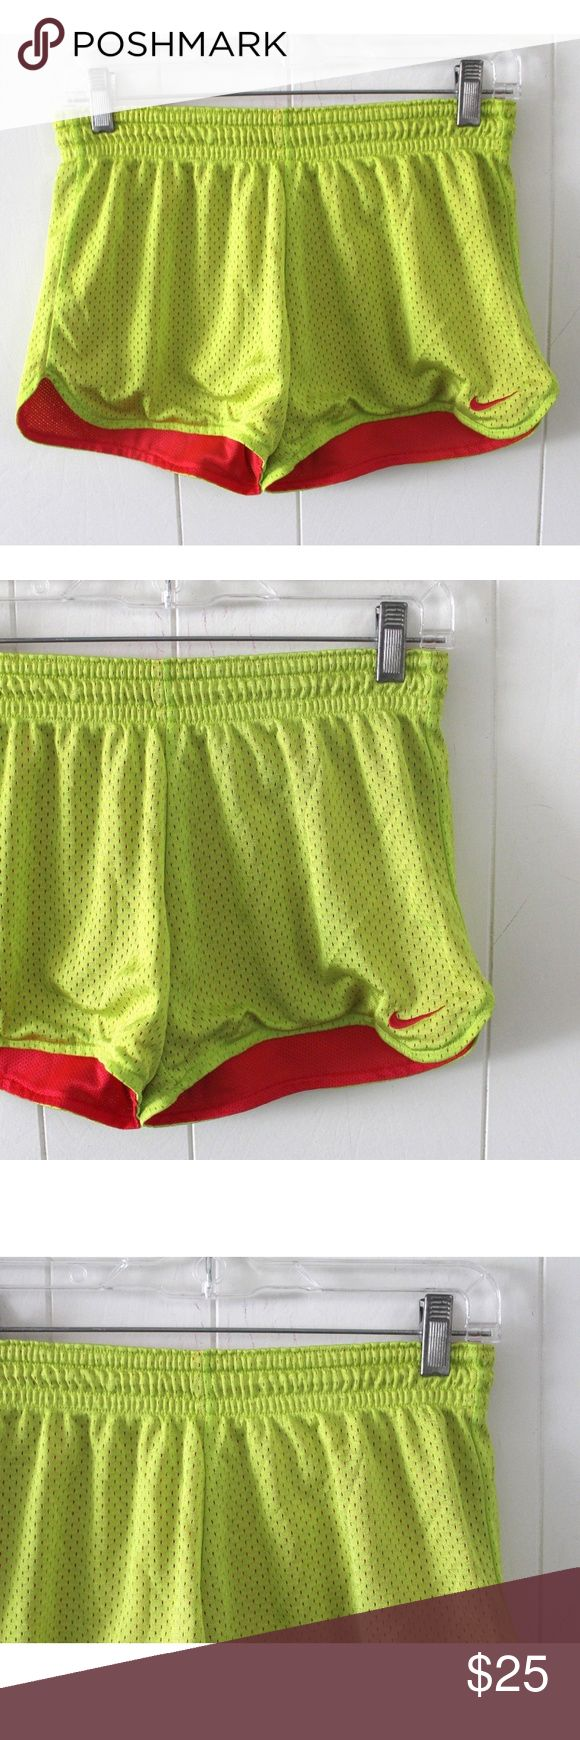 "Nike Neon Running Shorts Shorts - Size Small Nike neon running shorts shorts. Size small. No holes, tears, or frays. Pre-owned but in great condition.   Measurements: size: small waist: 27"" hip: 34"" front rise: 8"" back rise: 10"" inseam: 2"" outseam: 11"" leg opening: 11"" no pockets  Such a cute pair of jeans for your wardrobe! Nike Shorts"